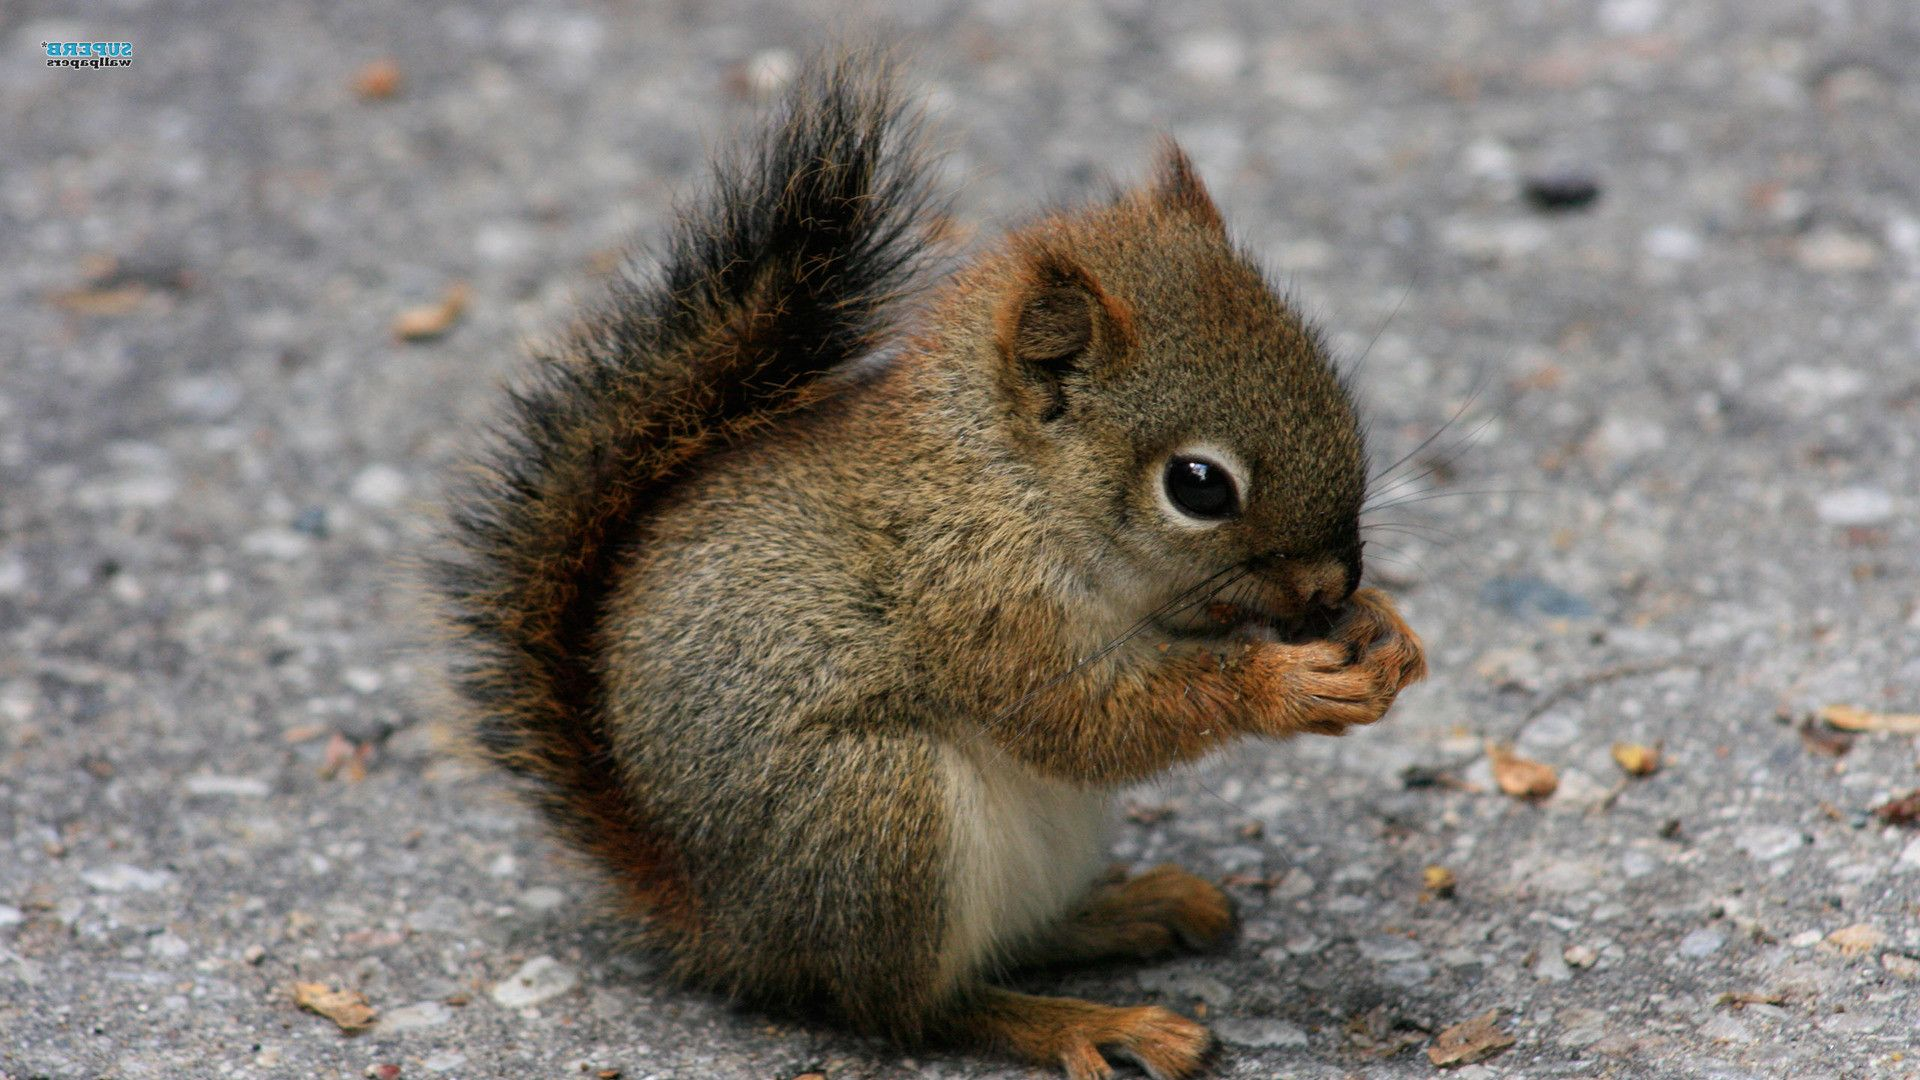 Hd Pictures Of Cute Animals: Home › Animals › Cute Squirrel Baby Animal